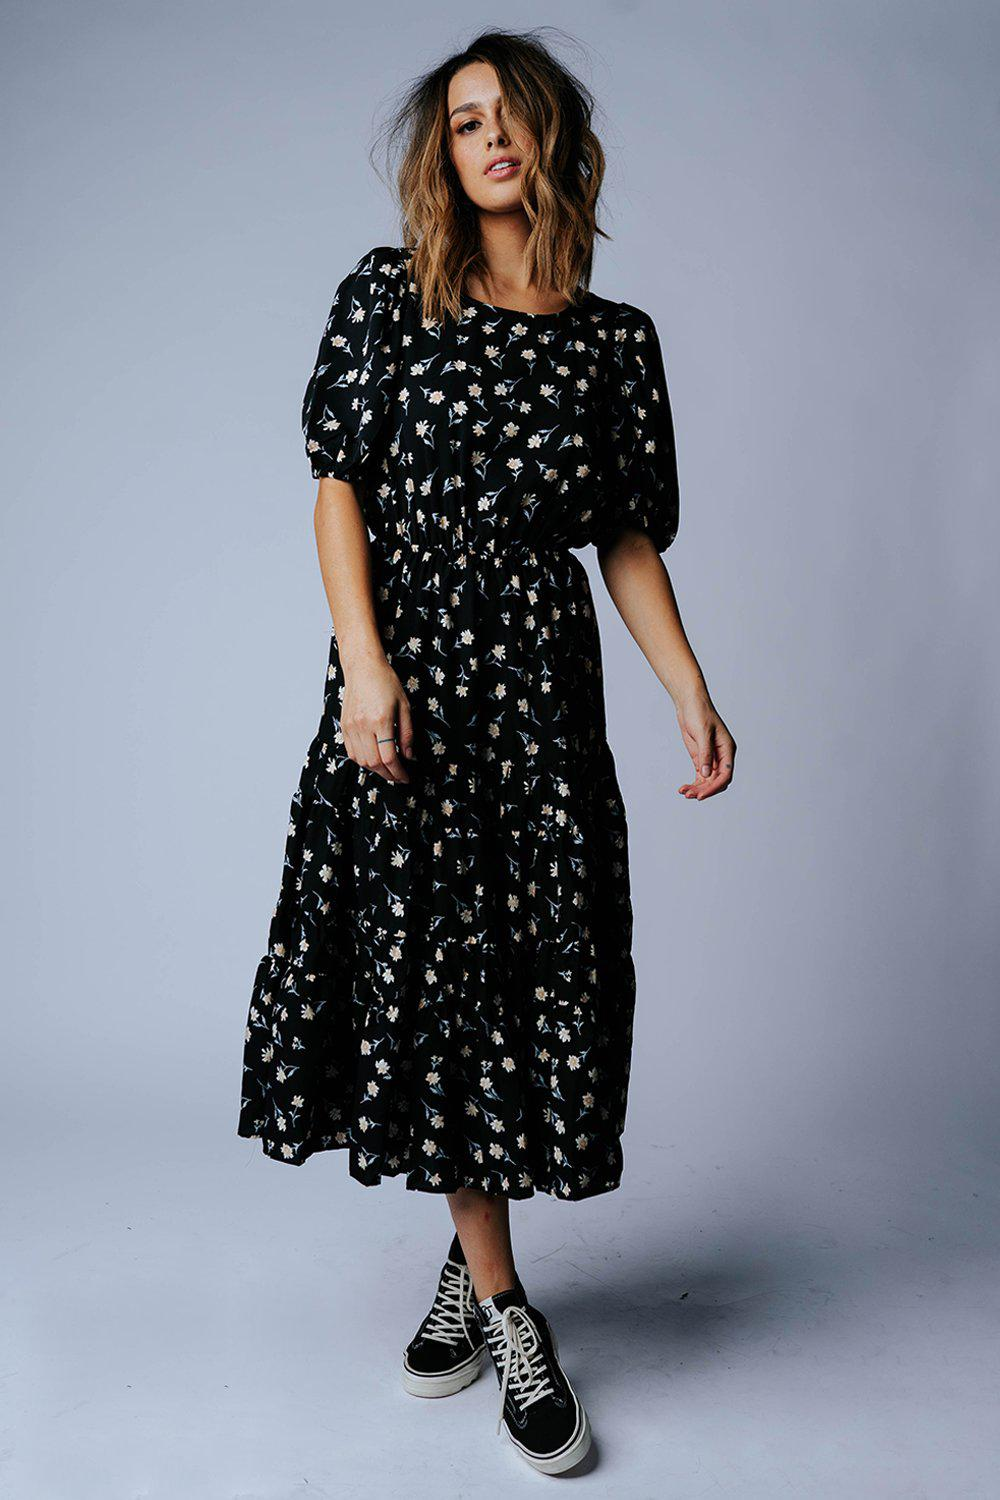 Second Time Around Floral Midi Dress, cladandcloth, n/a.